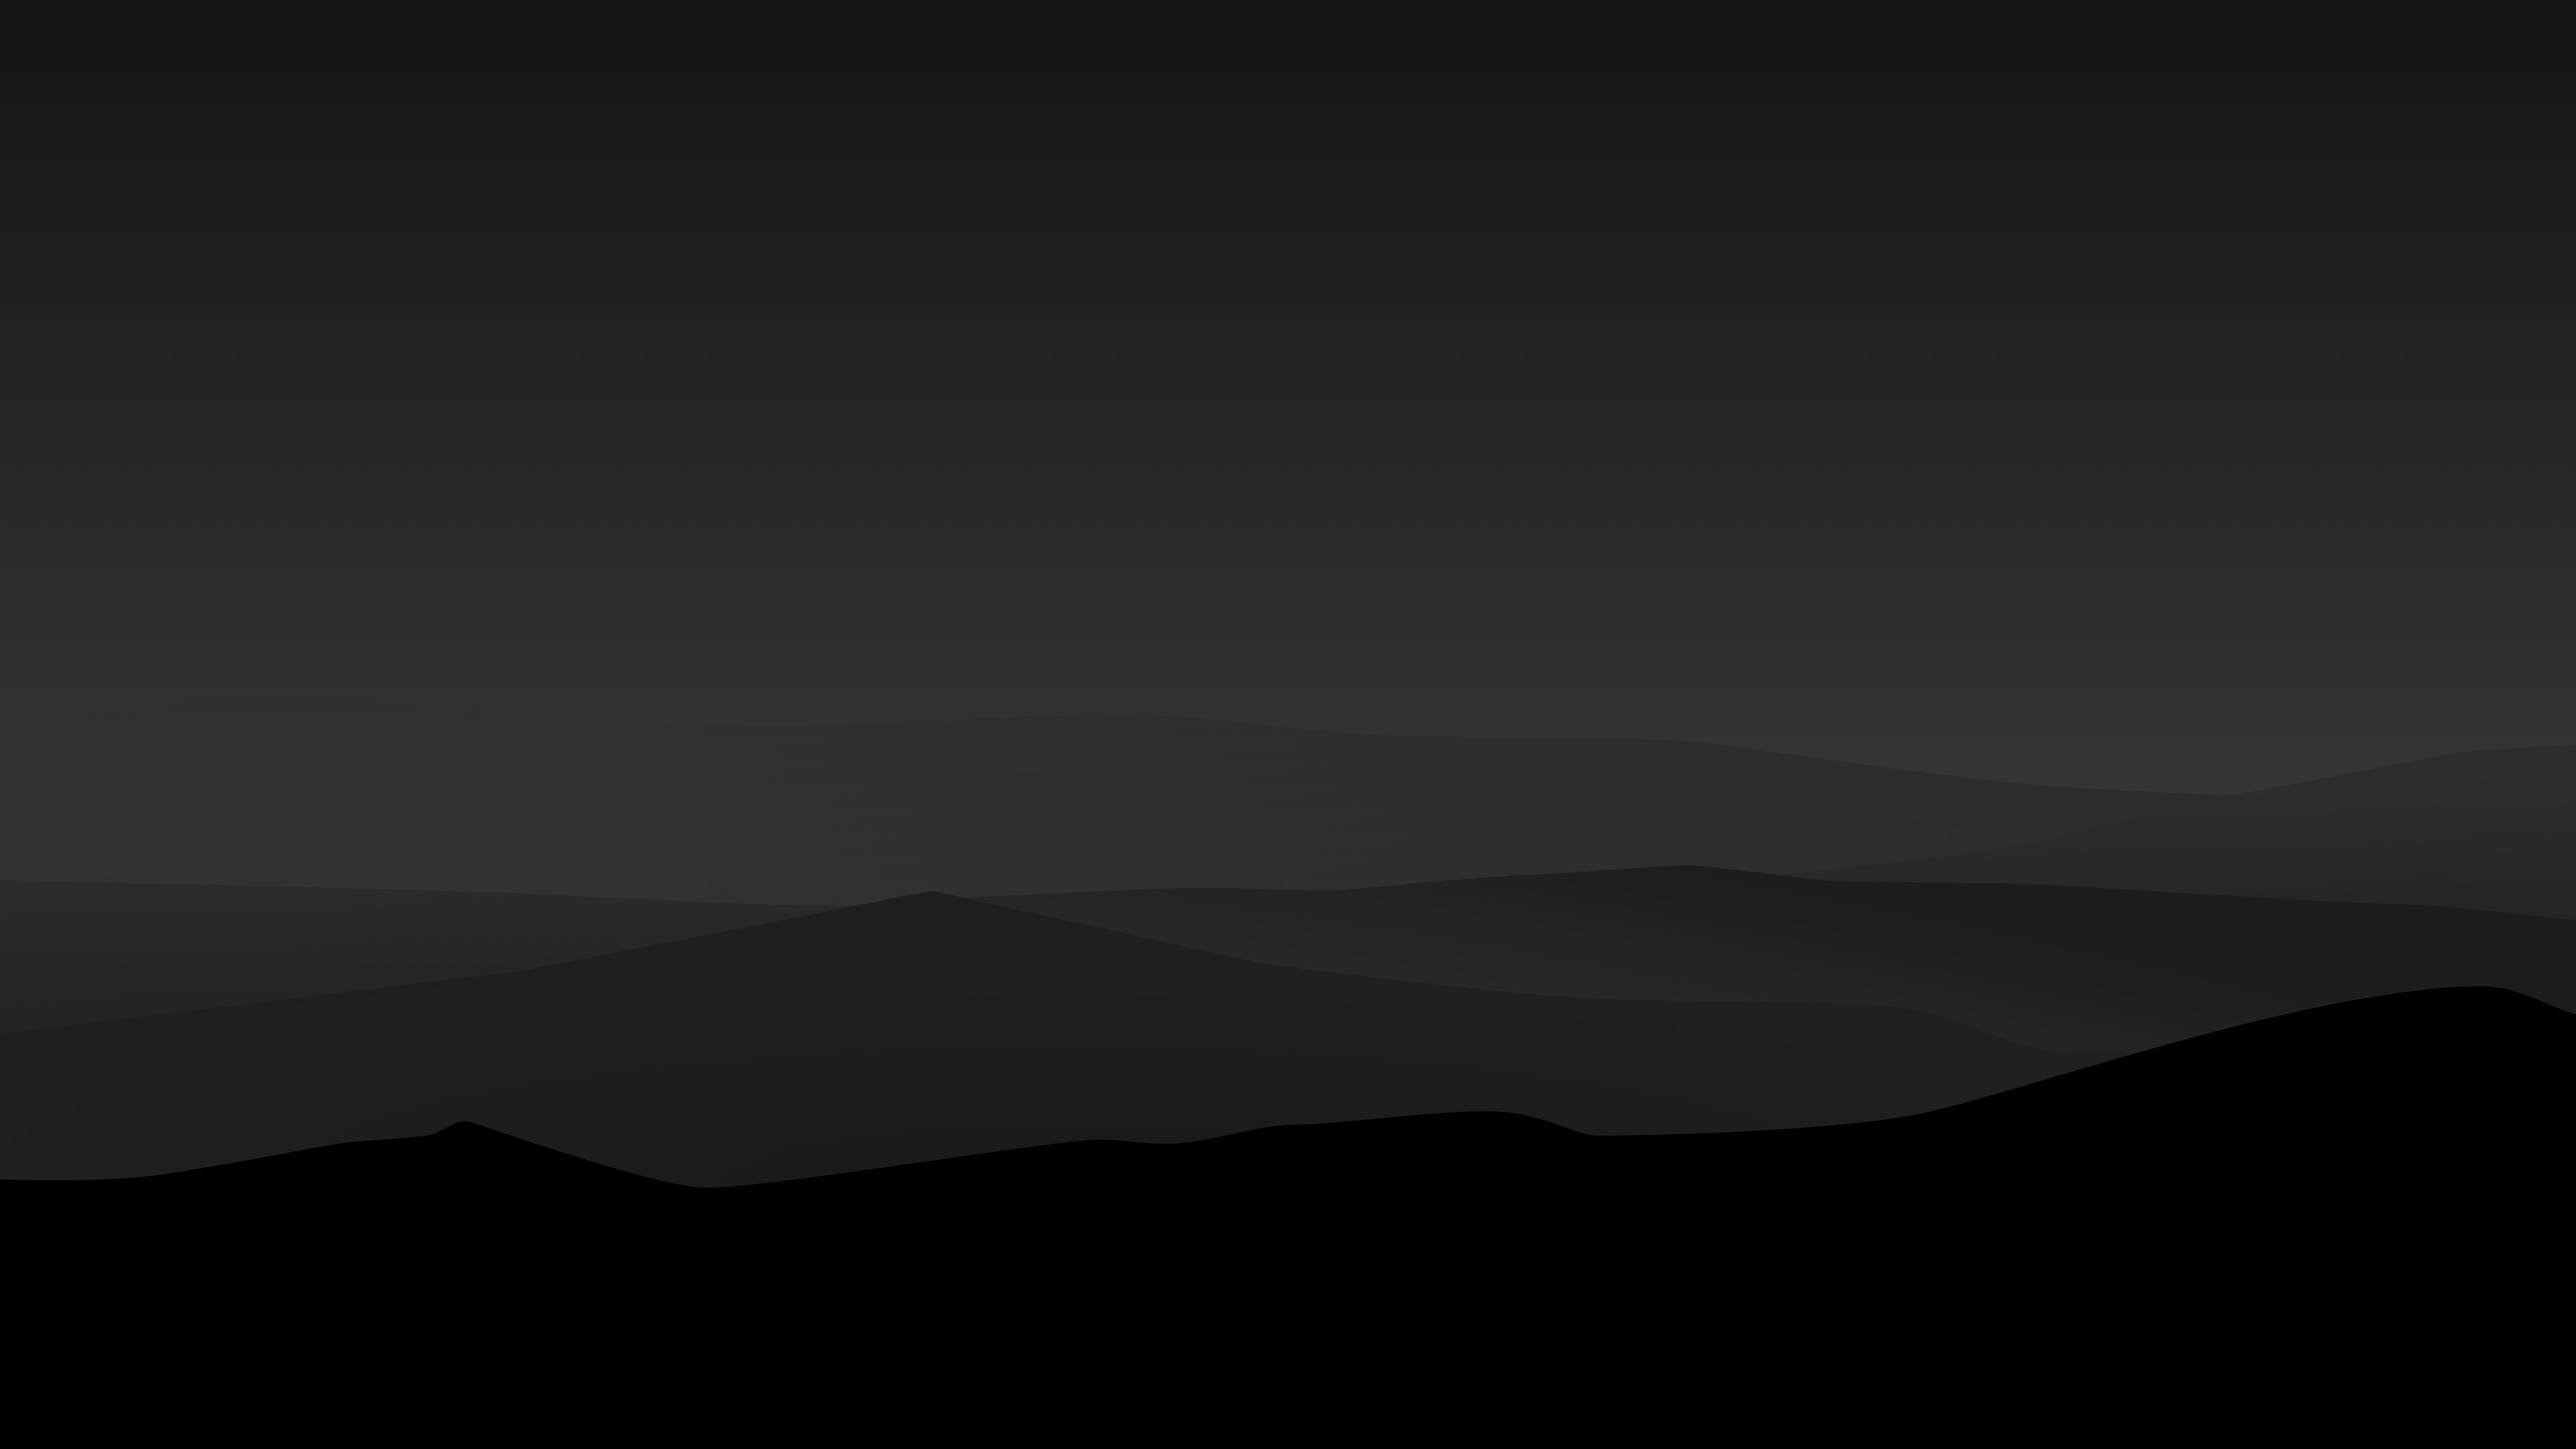 Dark Night Mountains Minimalist 4k Simple Background Wallpapers Oled Wallpapers Mou Desktop Wallpaper Black Minimalist Wallpaper Minimalist Desktop Wallpaper